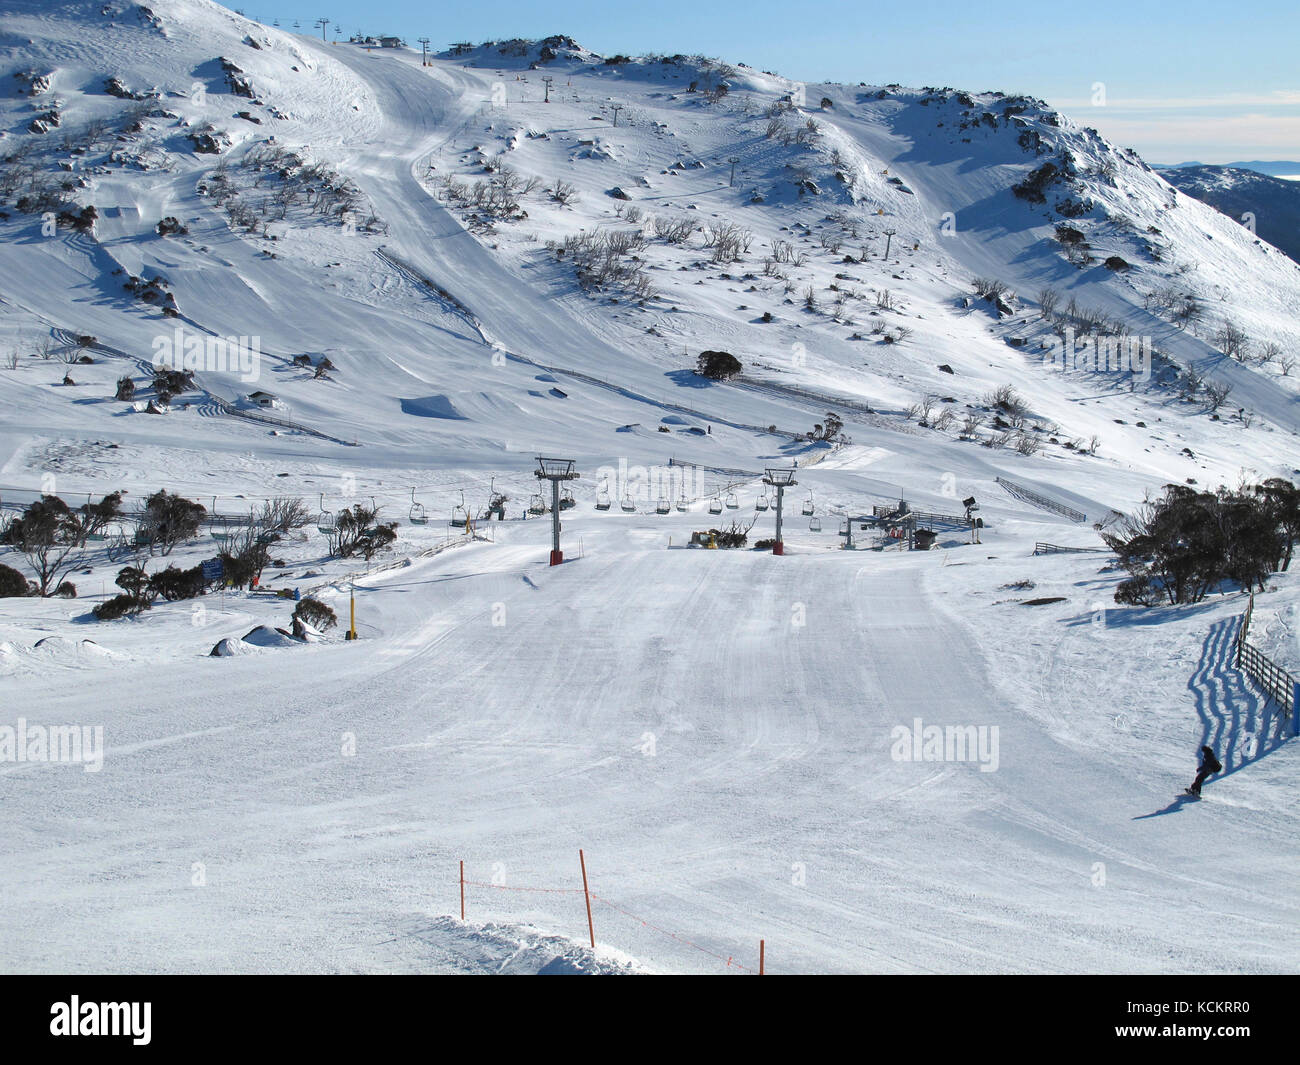 ski run at mount blue cow, part of the perisher ski resort in the